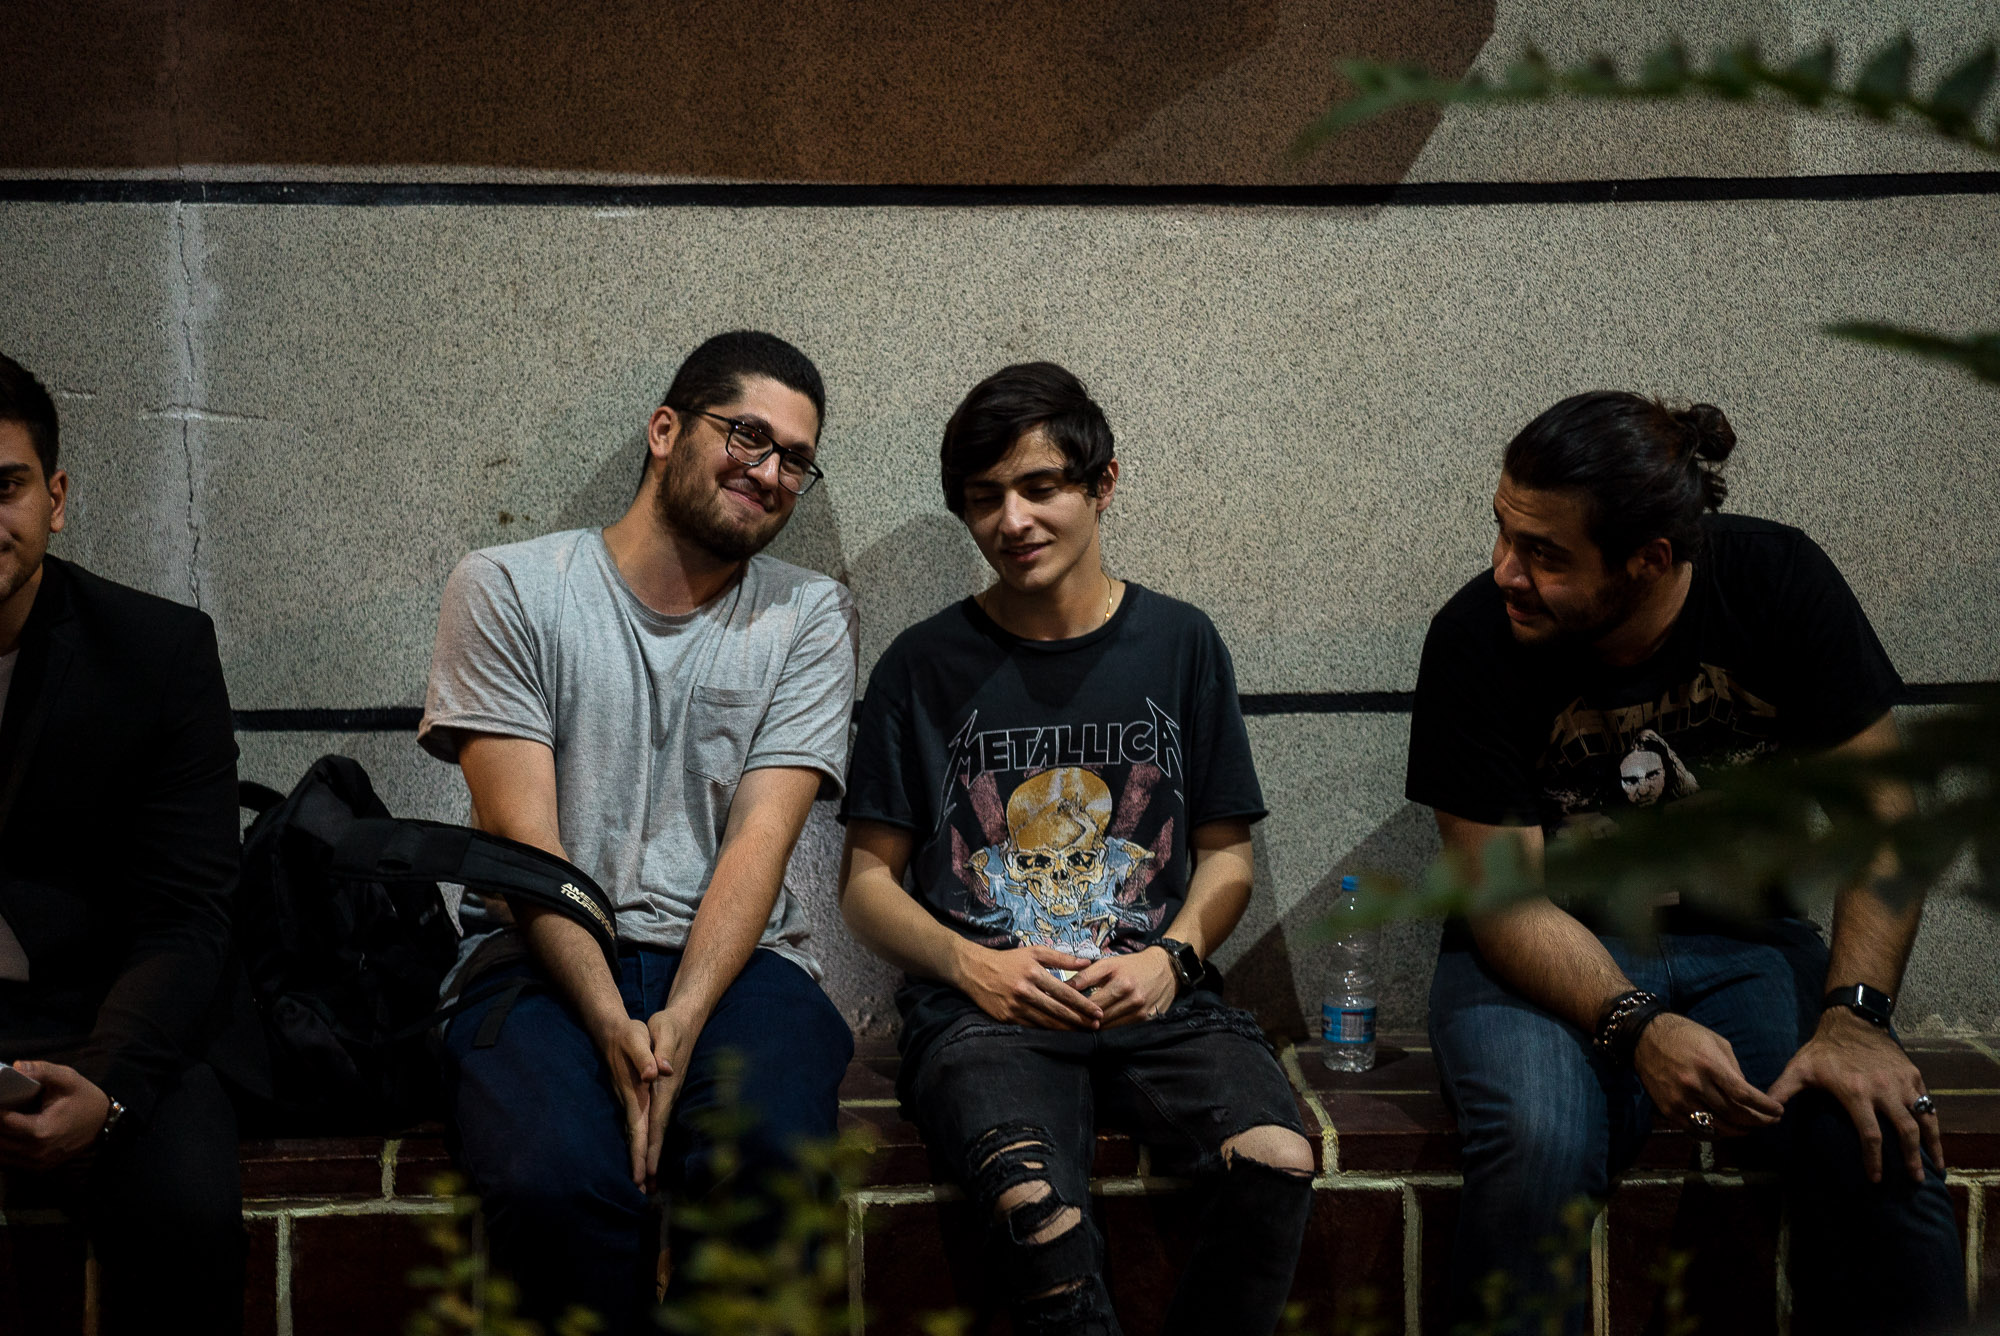 young metal fans in Tehran